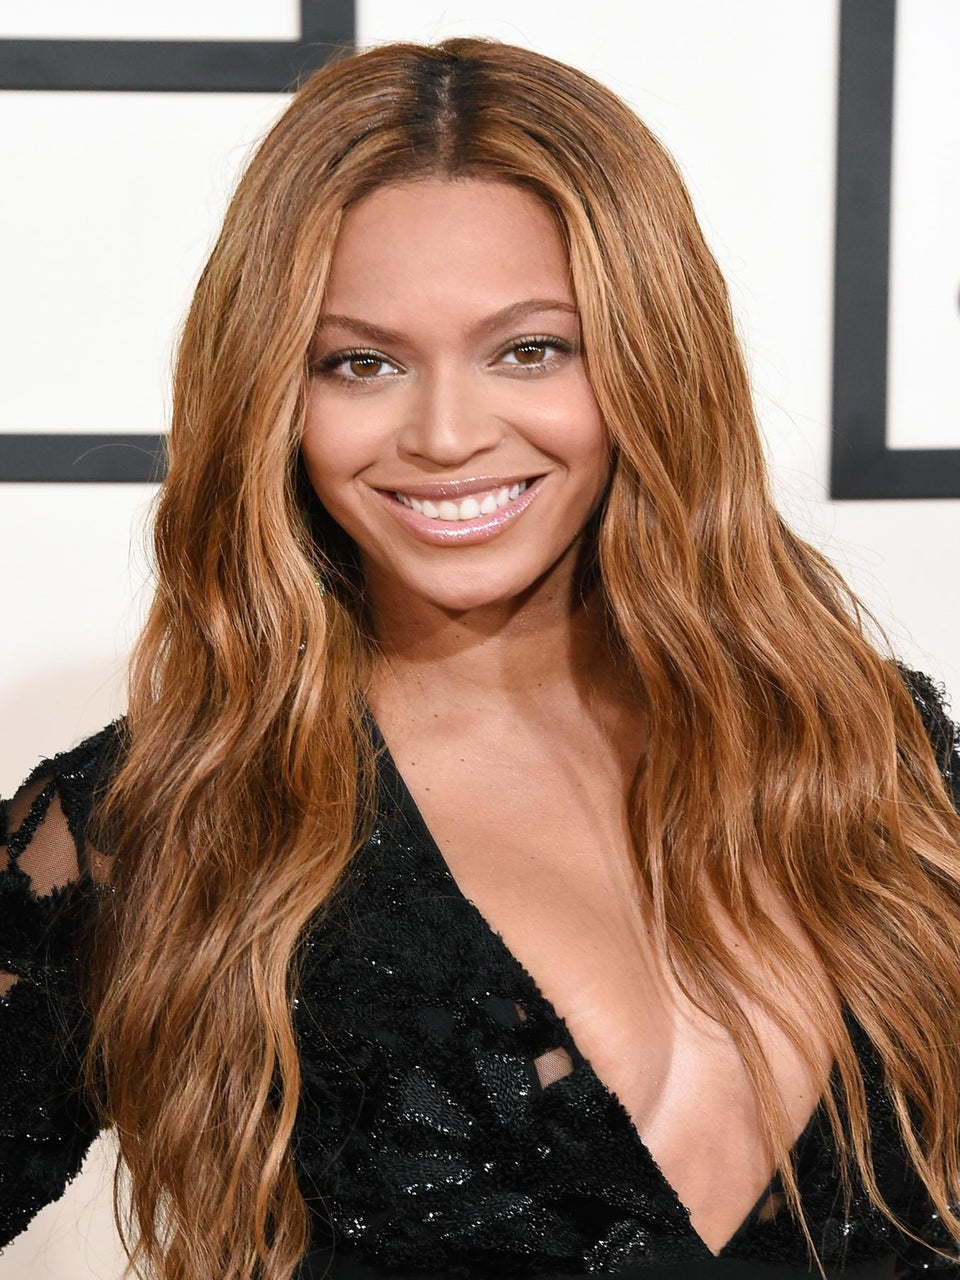 A Step-by-Step Guide to Getting Beyoncé's Grammy Hair